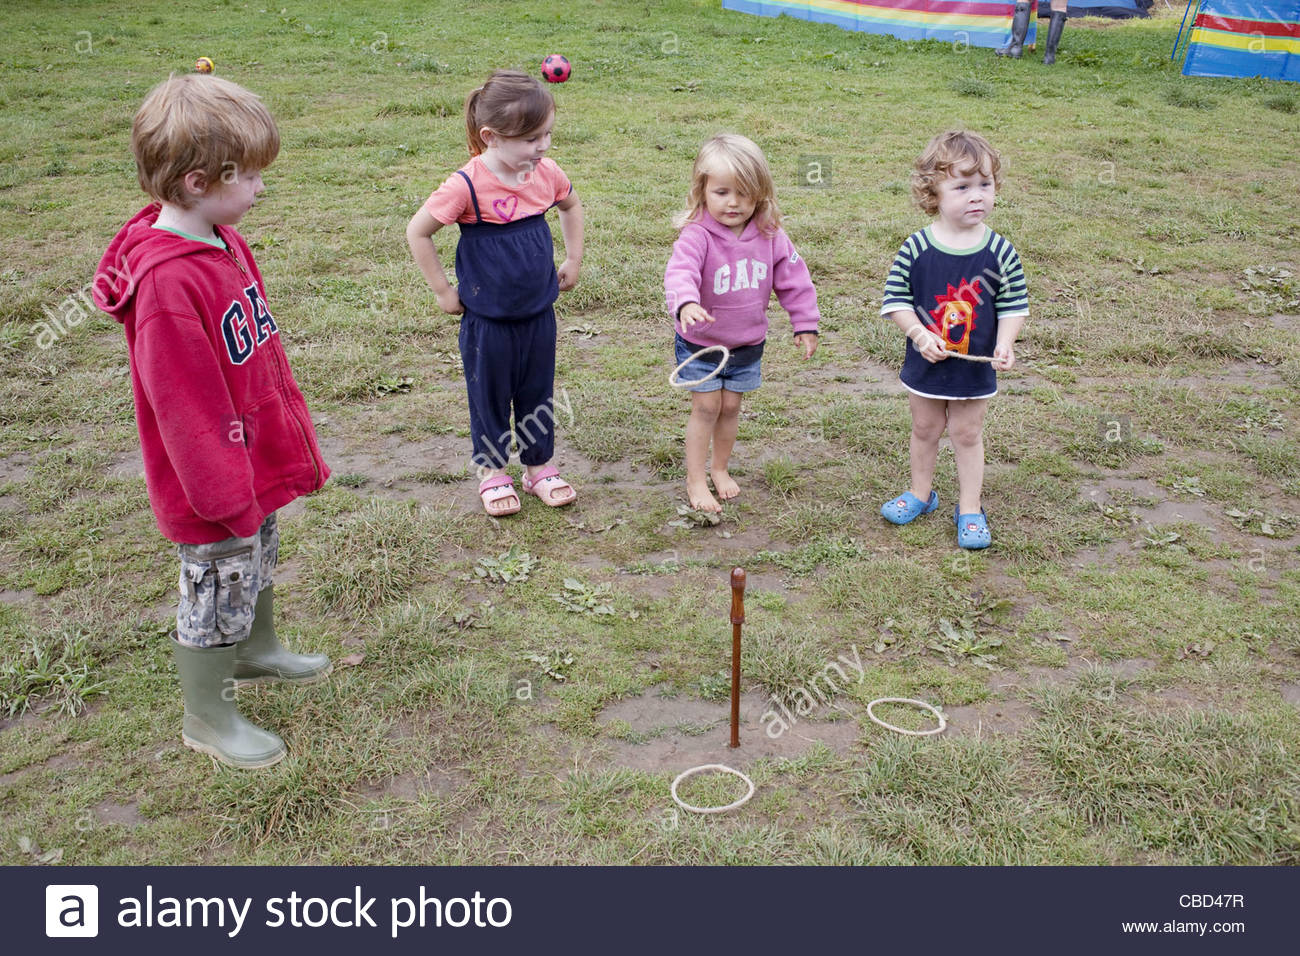 kids playing toss the ring - Stock Image